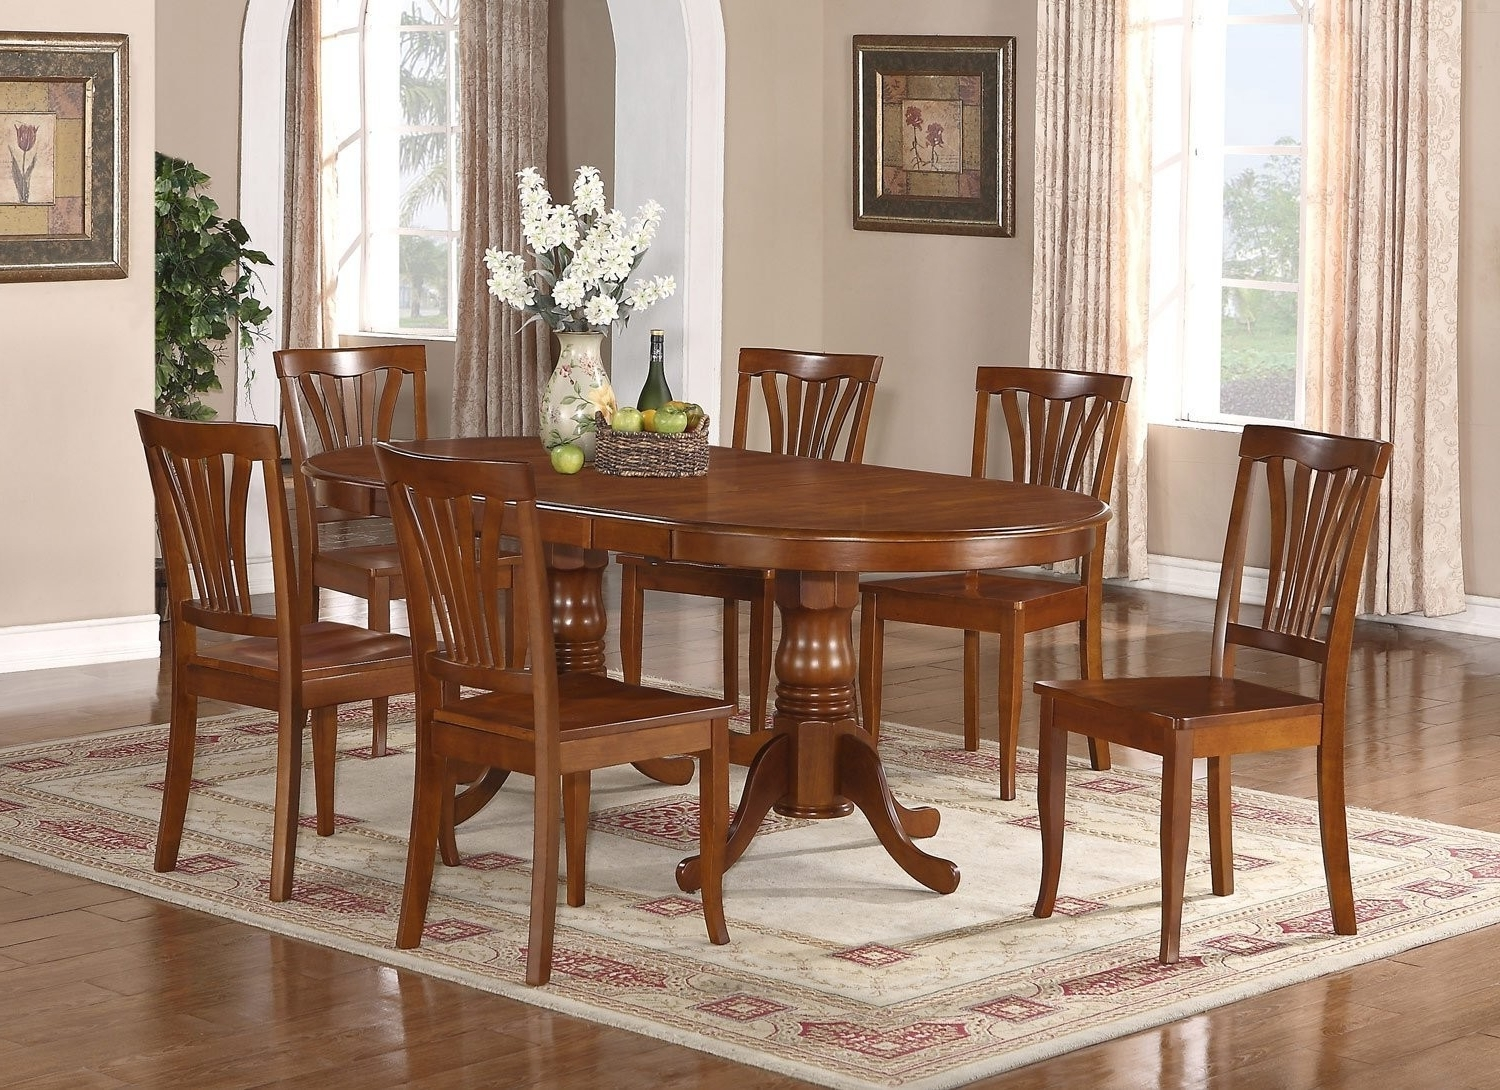 8 Seater Dining Table Sets Inside Current Round Dining Room Table Set For 8 Best Of Elegant 8 Seater Dining (View 5 of 25)